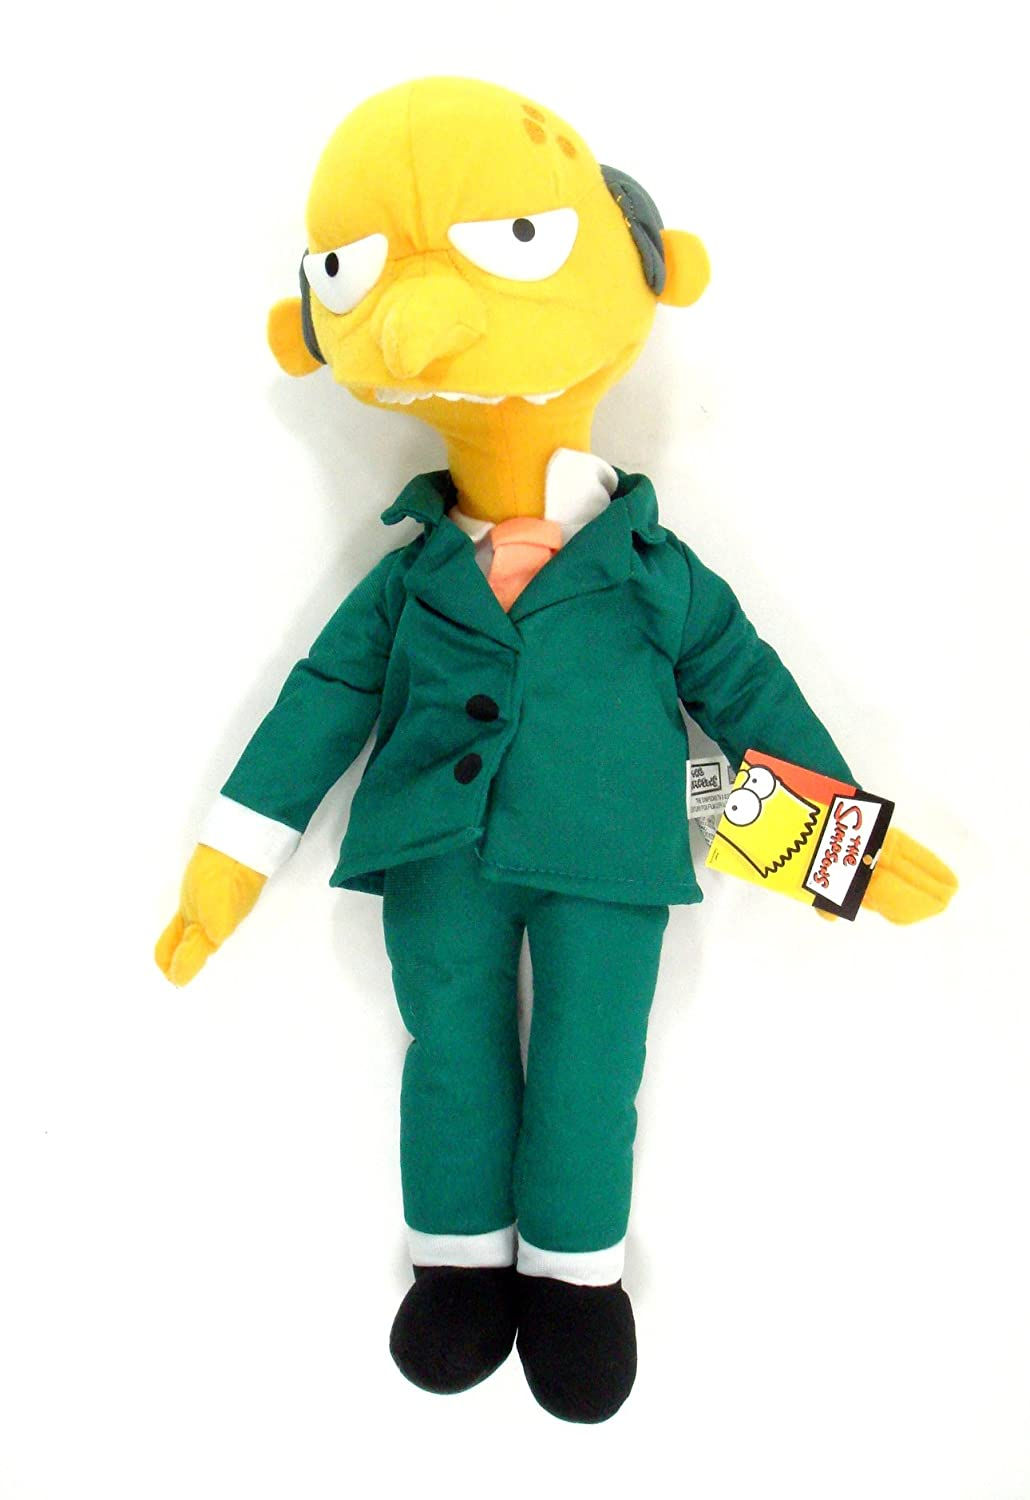 Simpsons 17 Inch Mr. Burns Plush Doll